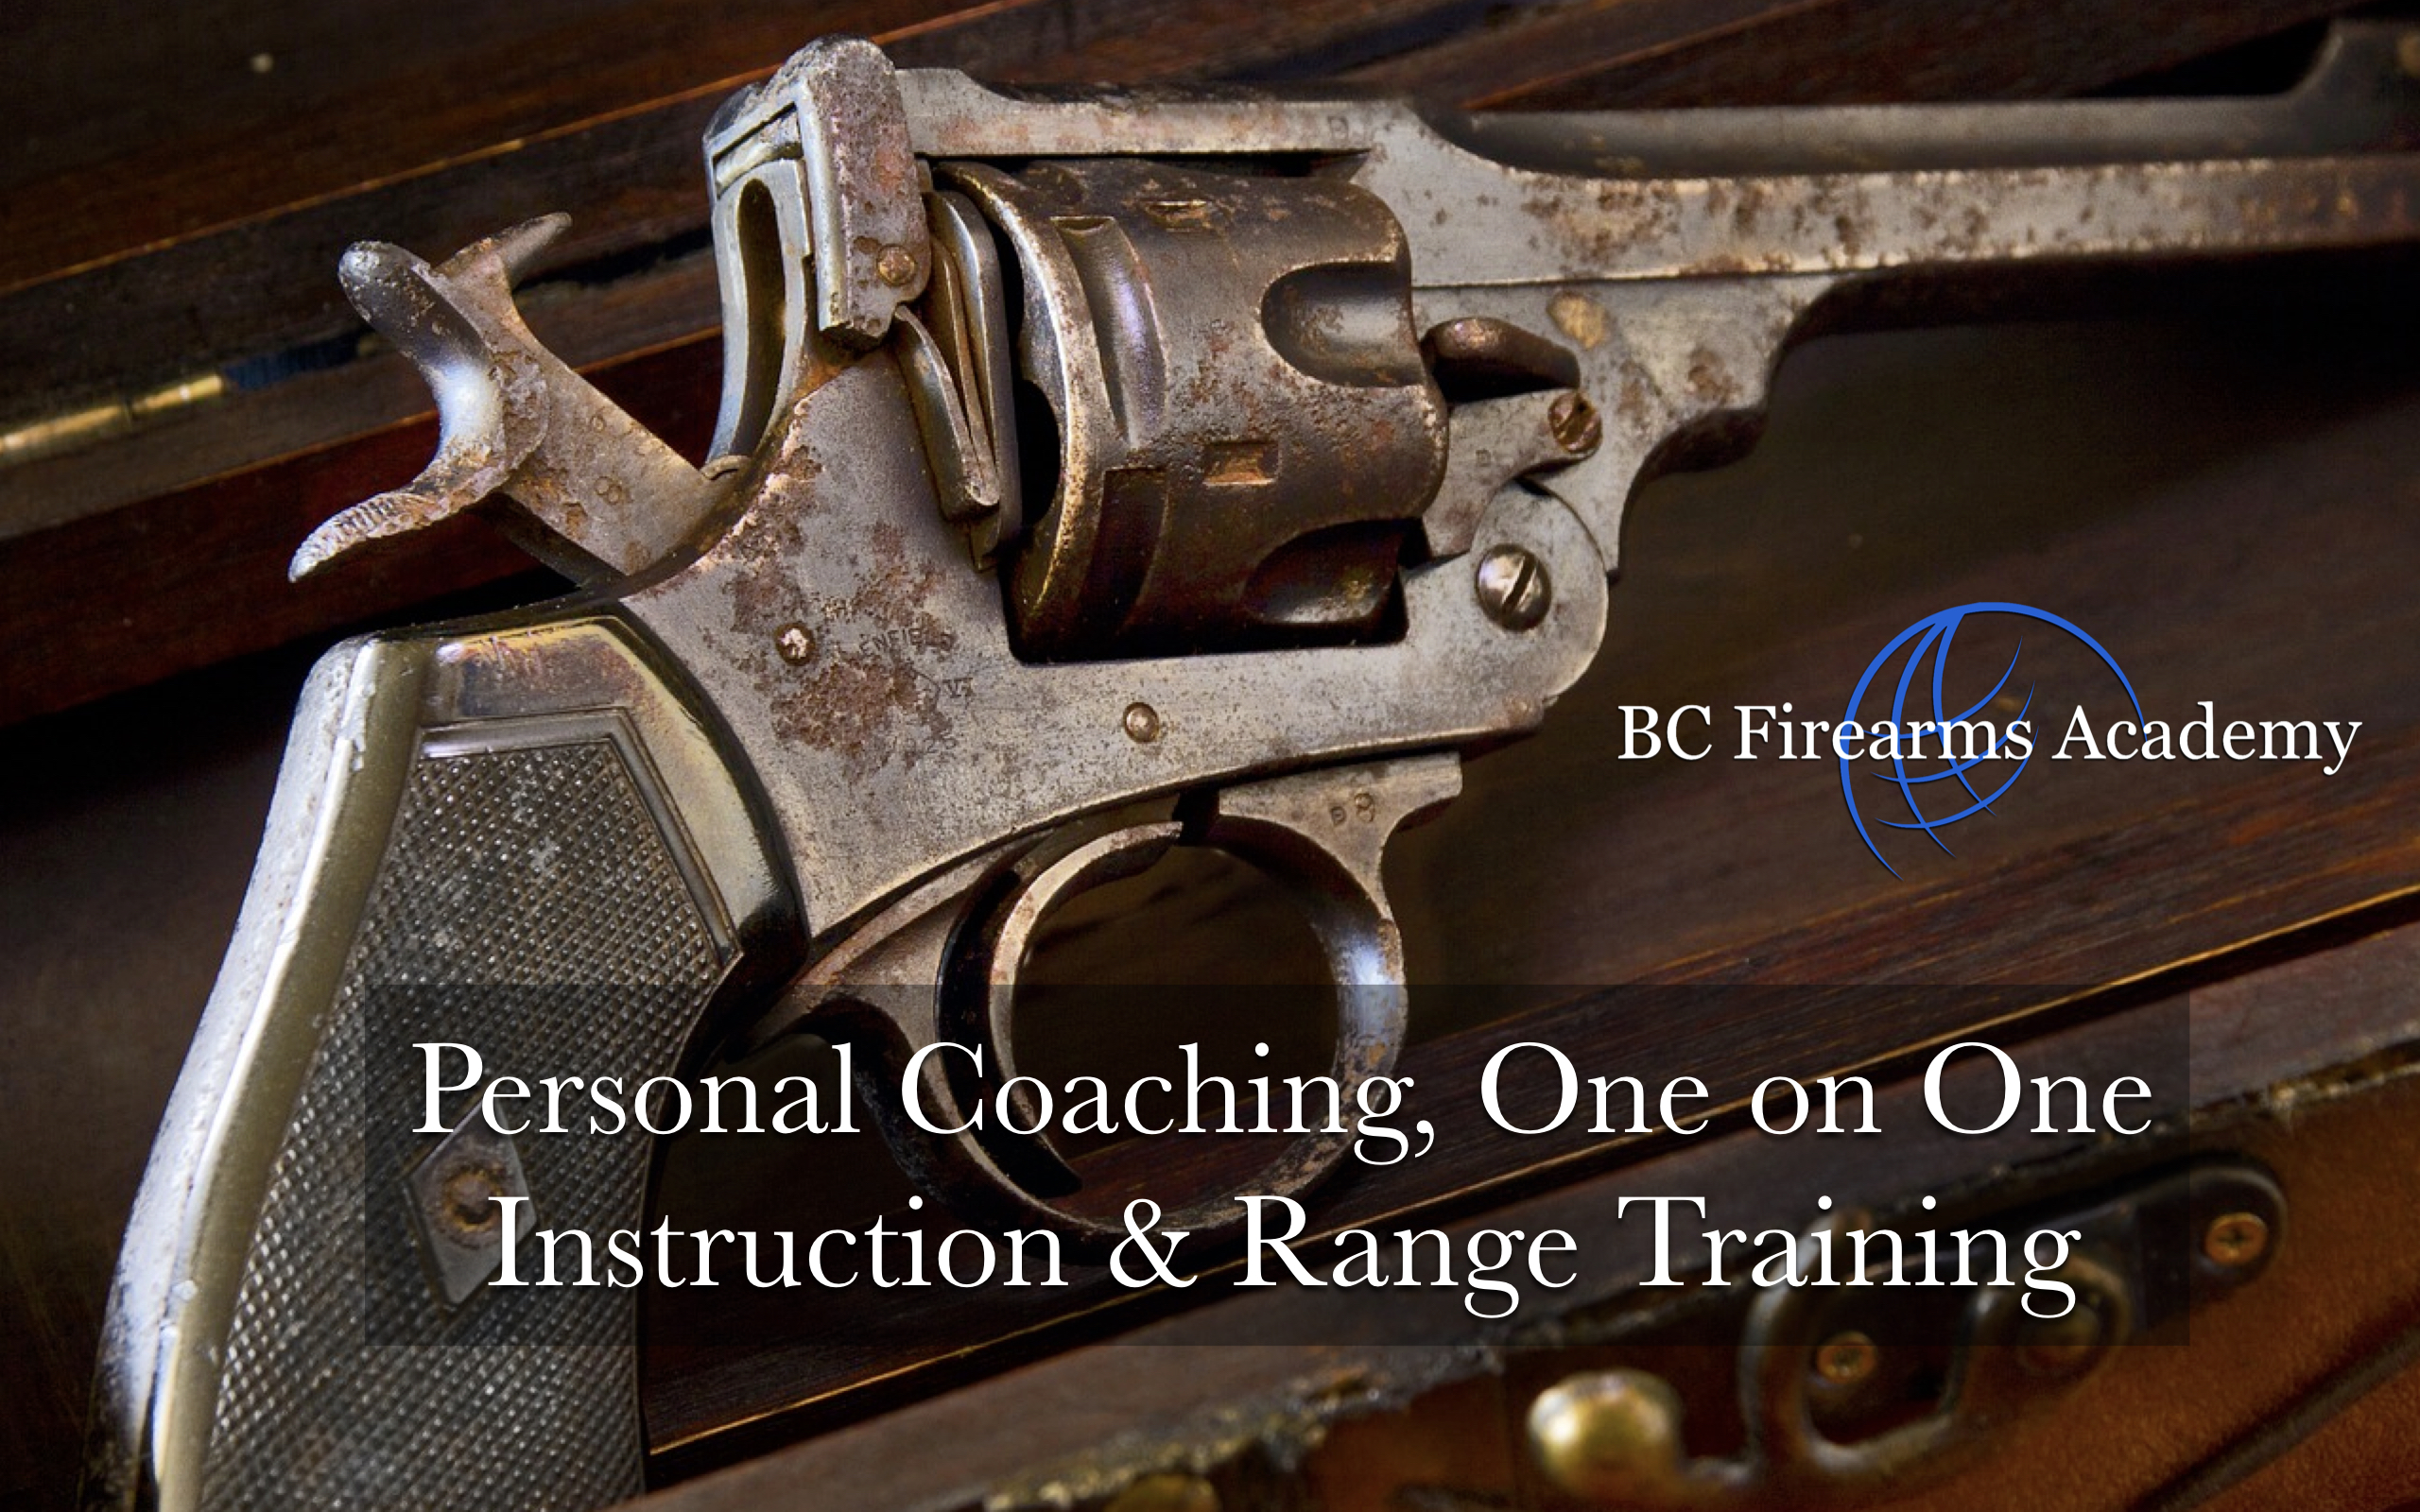 Personal Coaching, One on One Instruction & Range Training Oct 19